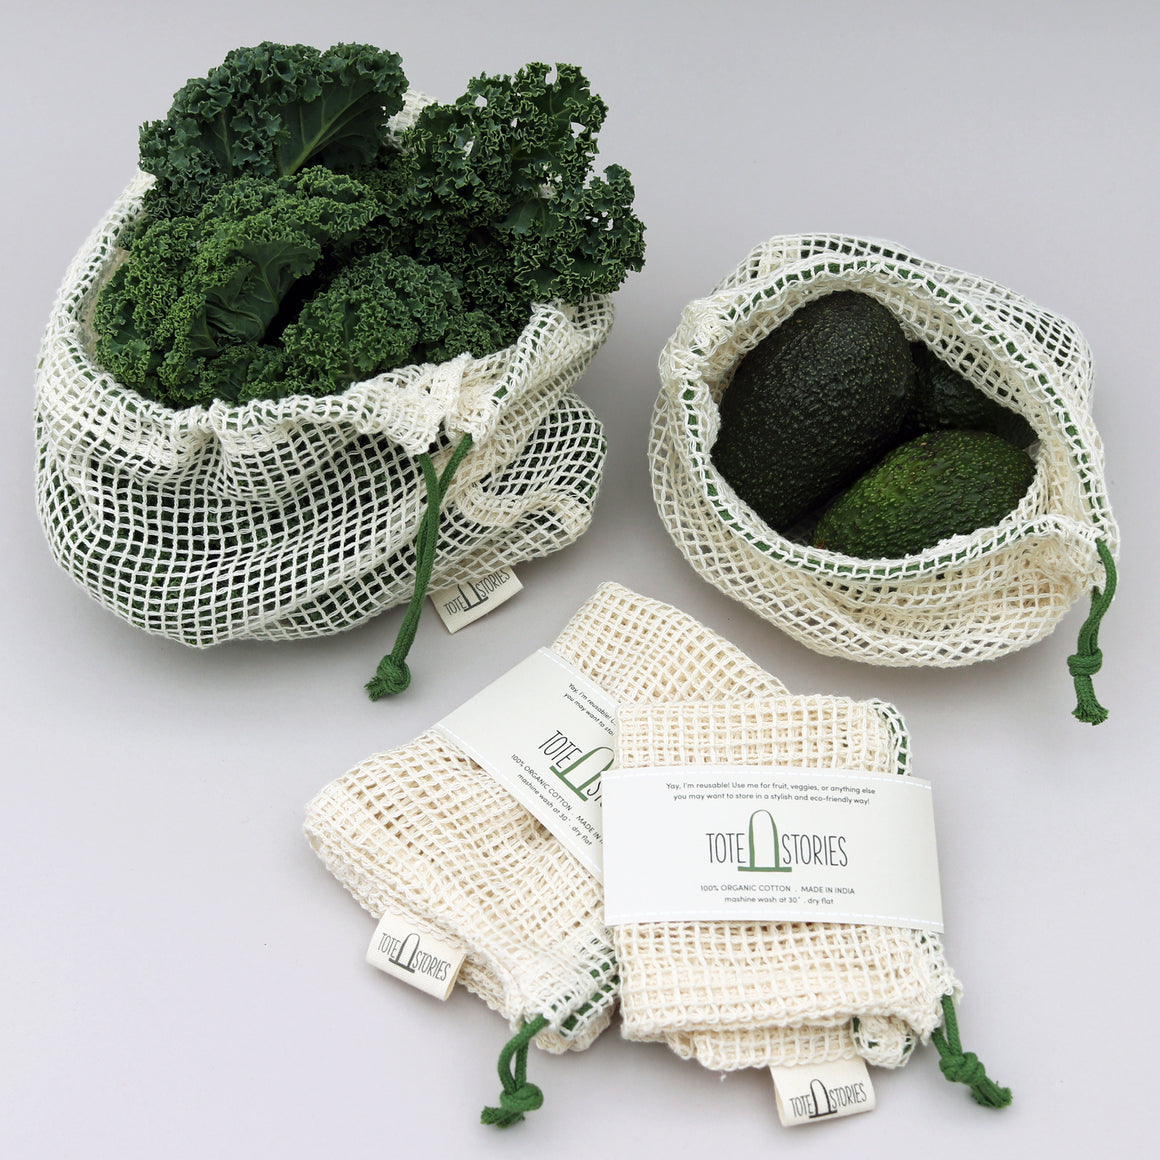 Mesh produce bag - Hamneda Forest